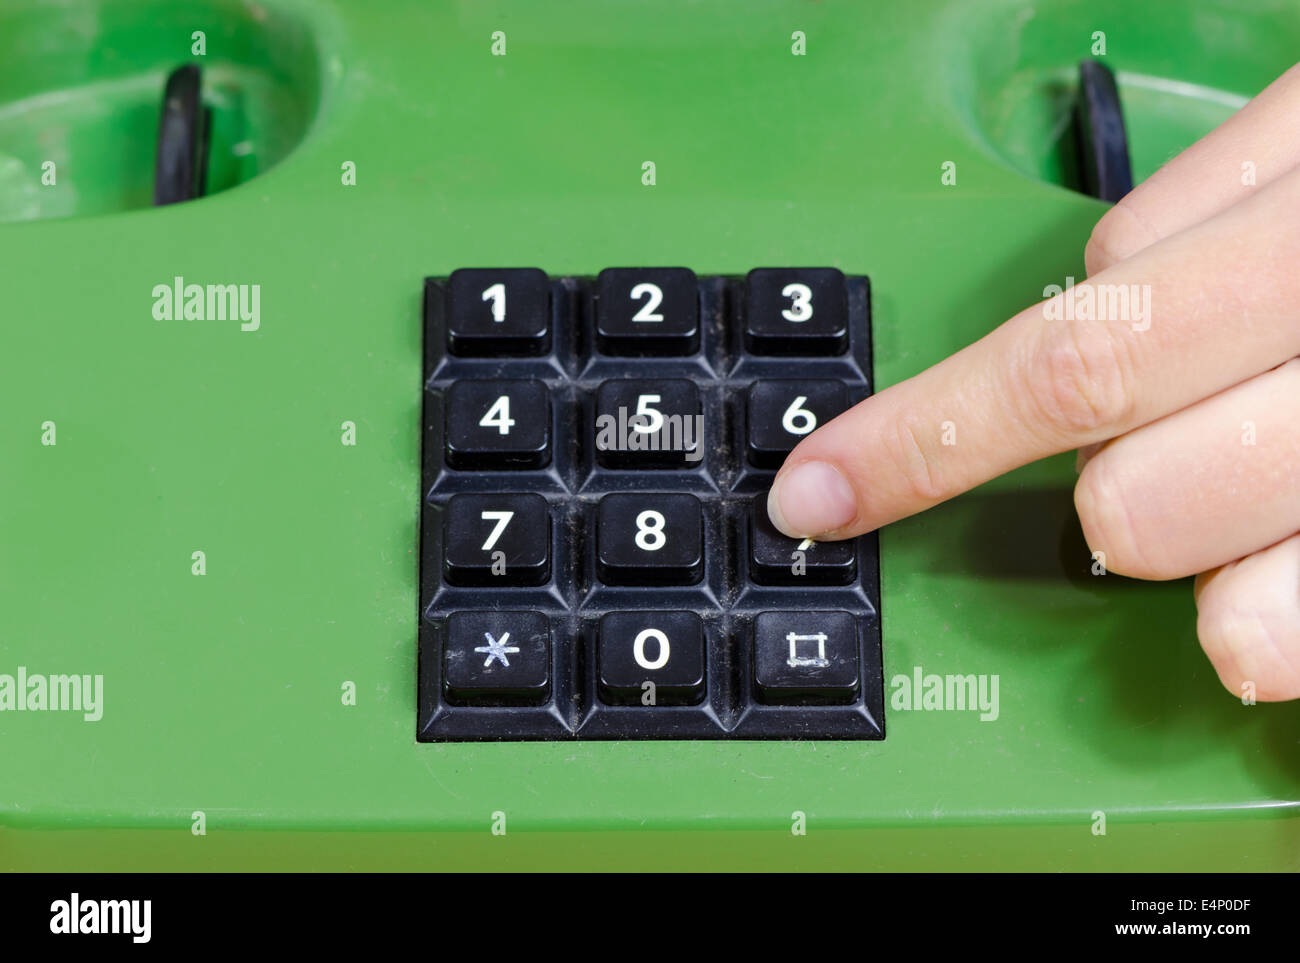 Human fingers press buttons with numbers on old retro telephone. Dialing with home phone. - Stock Image